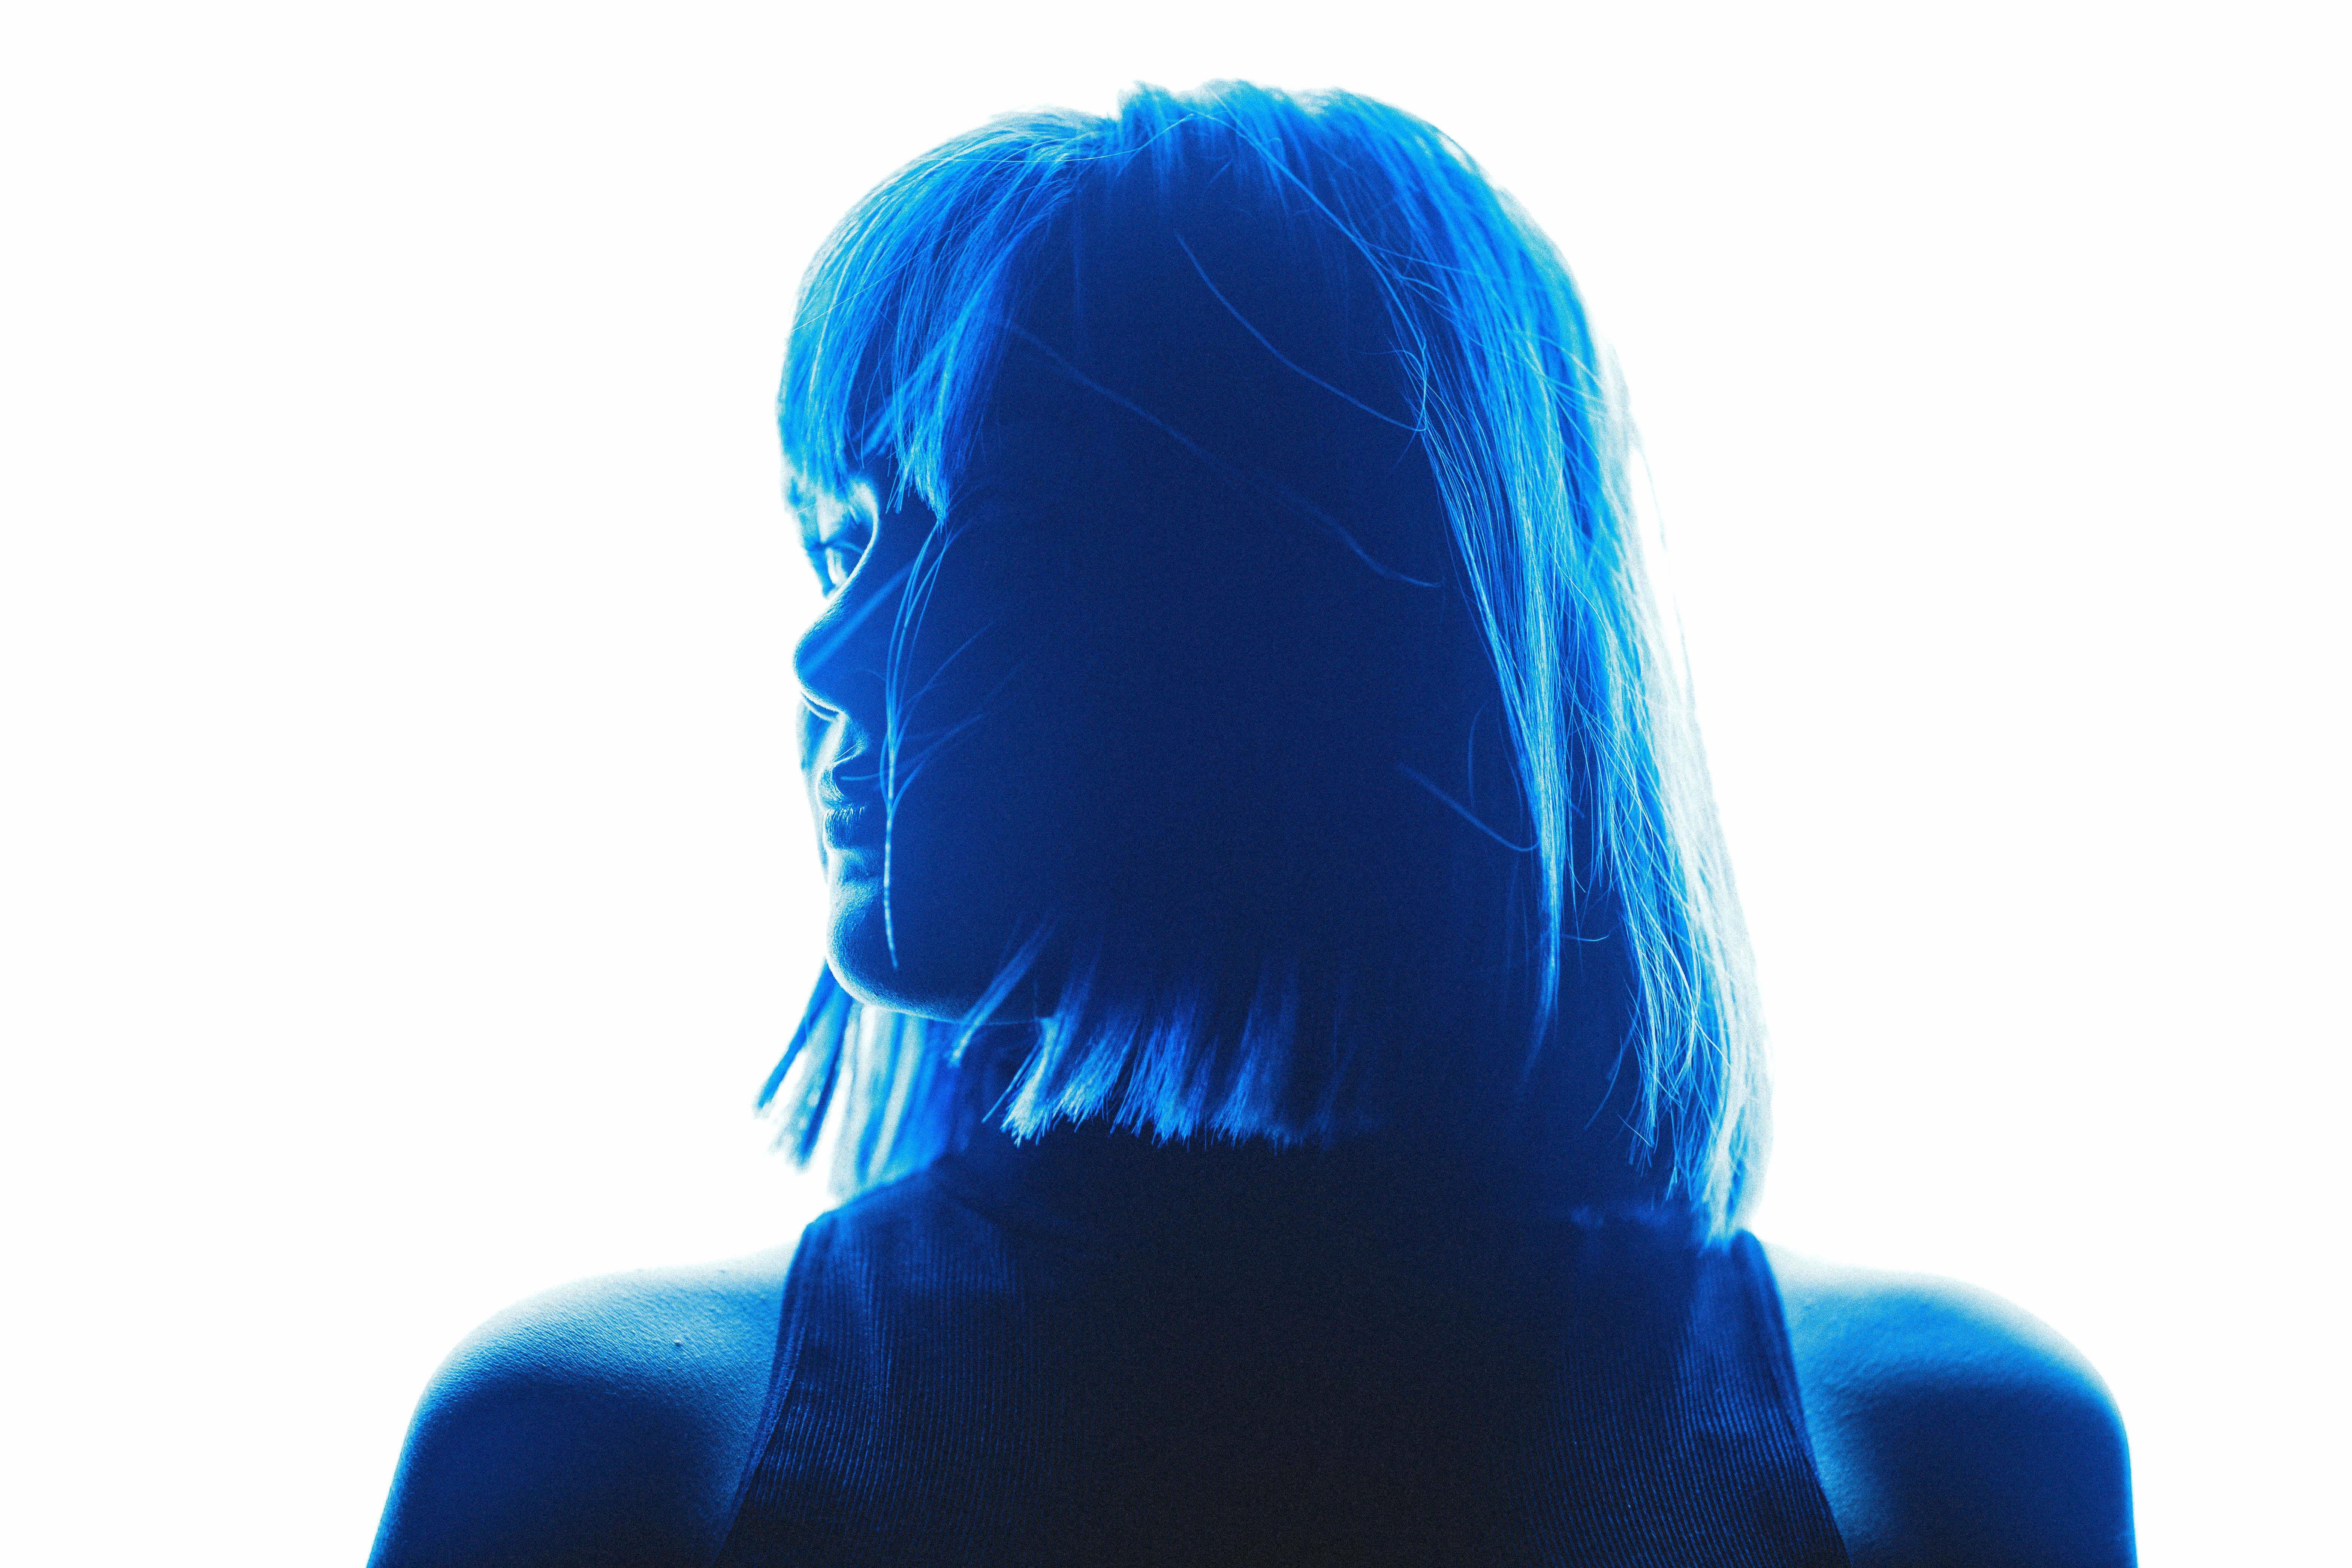 Silhouette Photography of Woman With Shoulder Length Hair